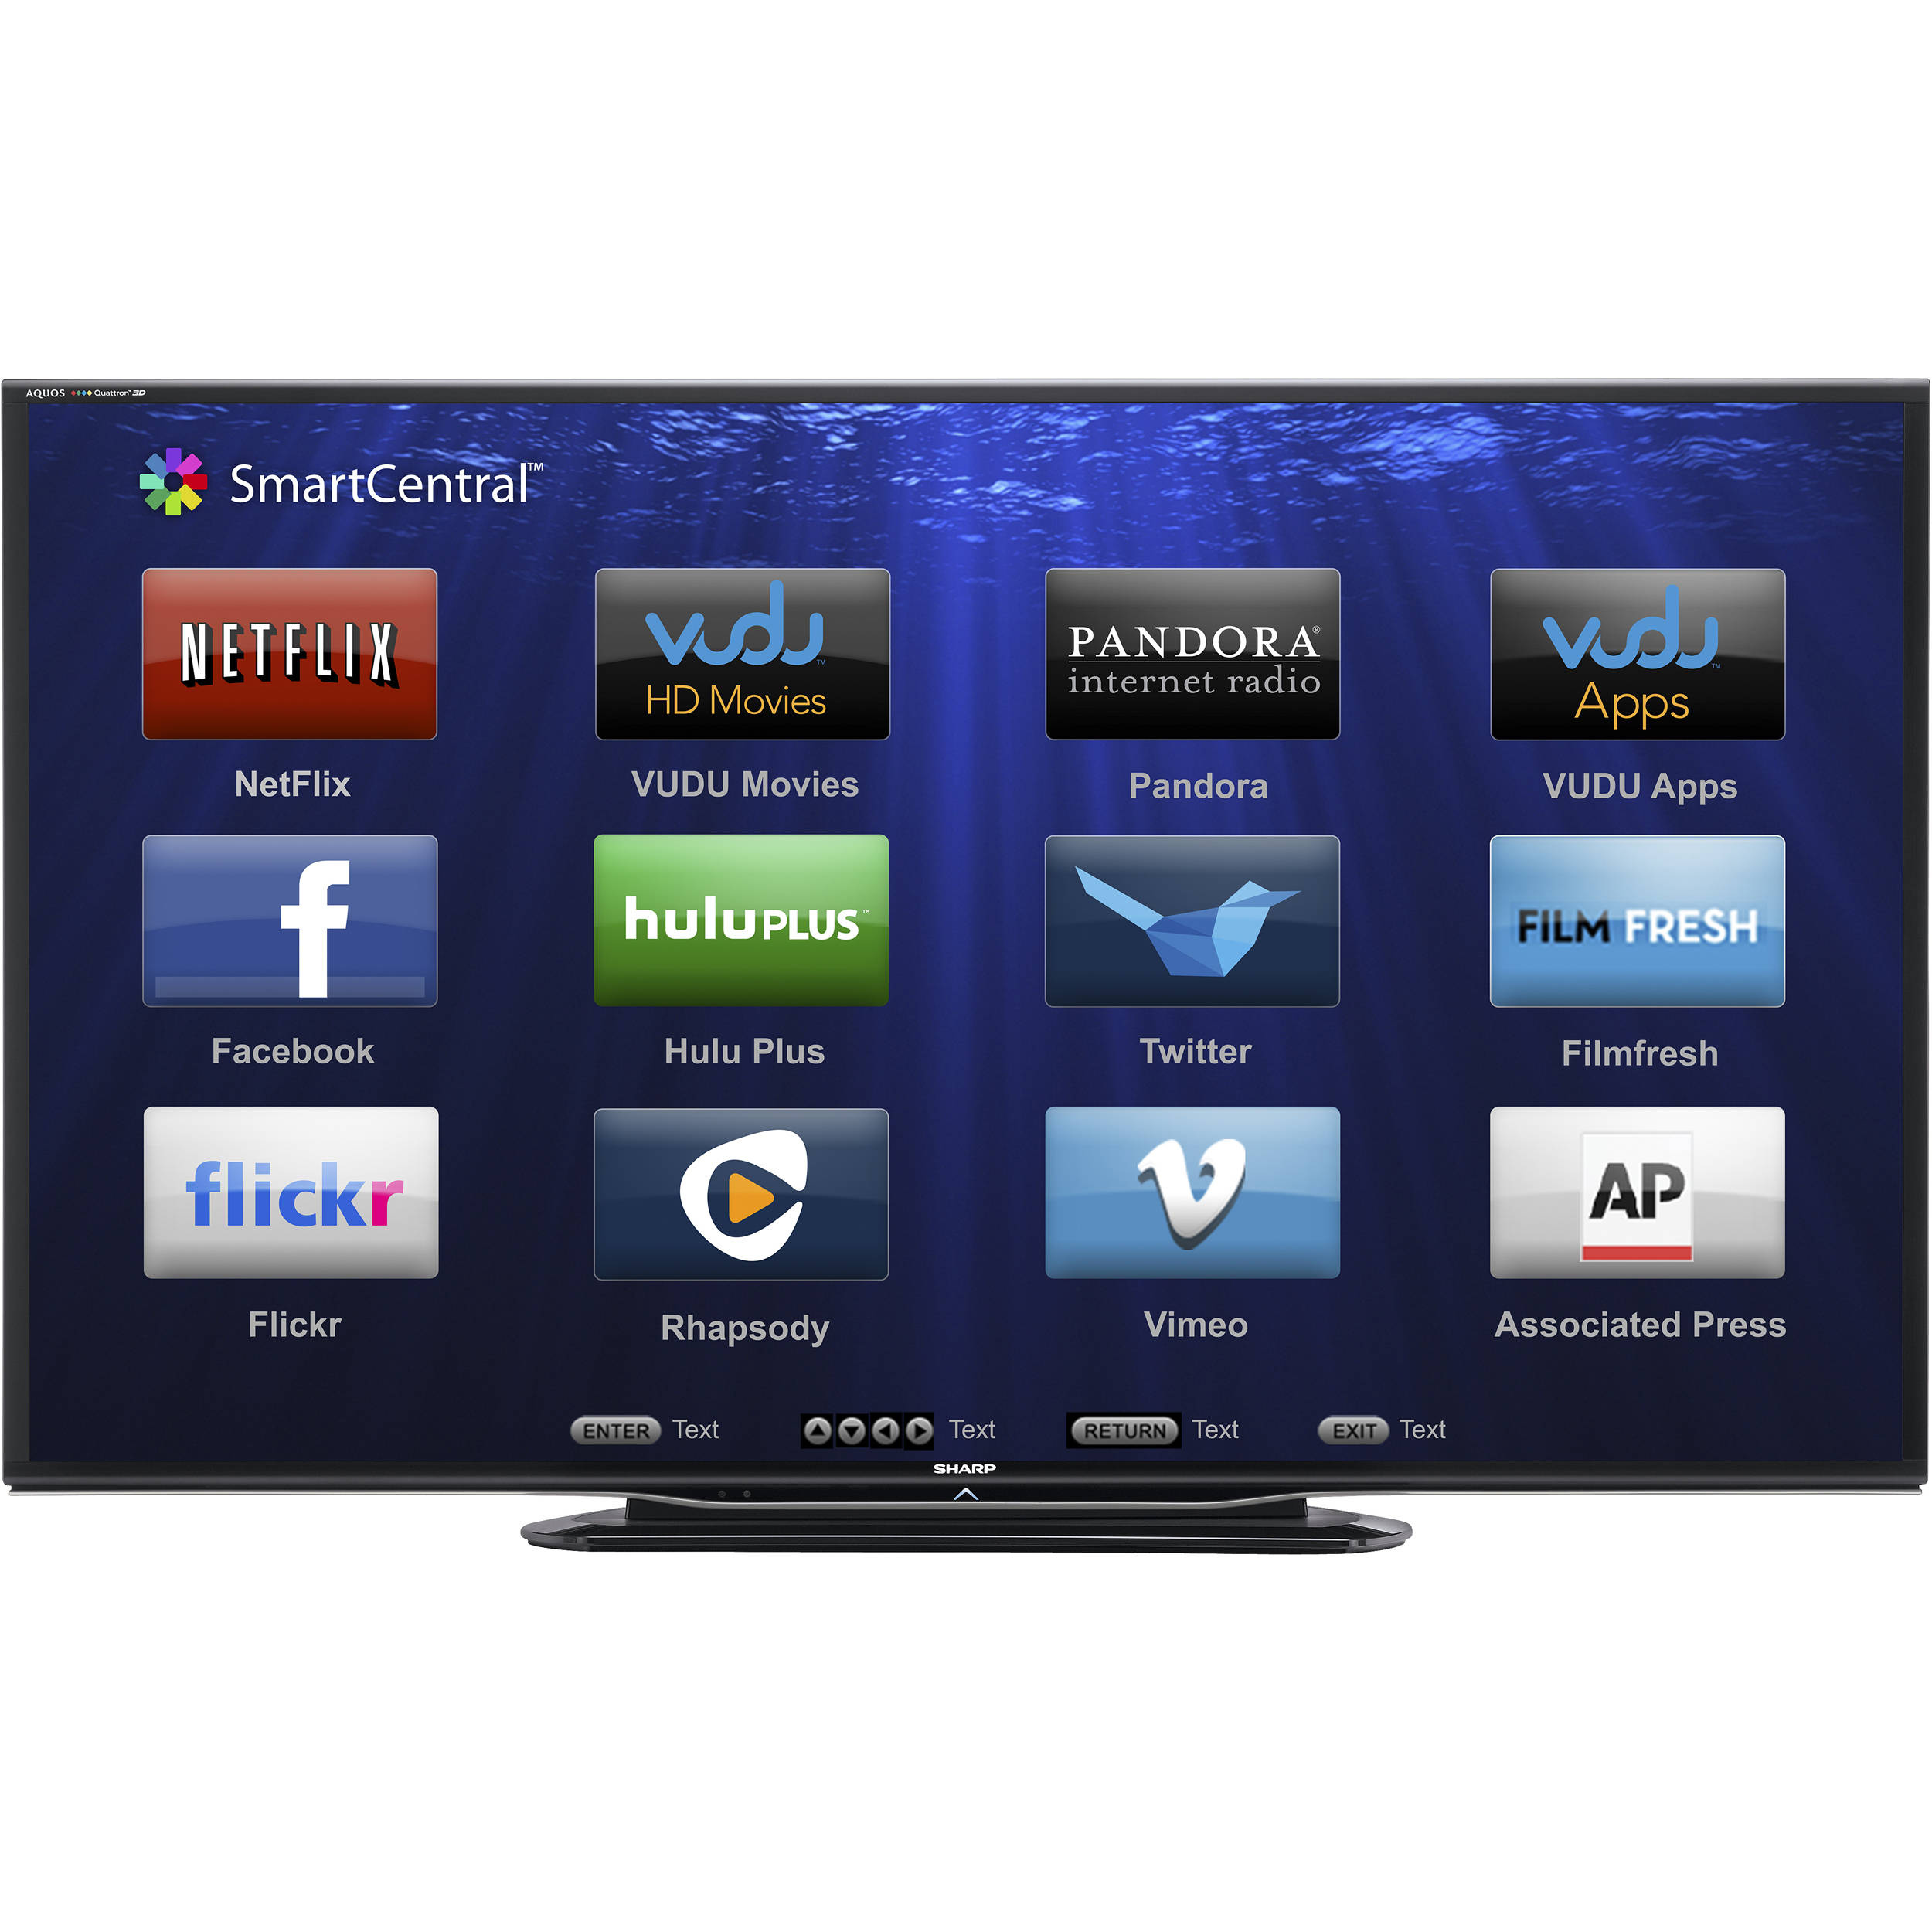 sharp 60 lc 60le757u aquos full hd smart led lc 60le757u rh bhphotovideo com Sharp AQUOS 60 Inch TV sharp aquos 60 led smart tv manual